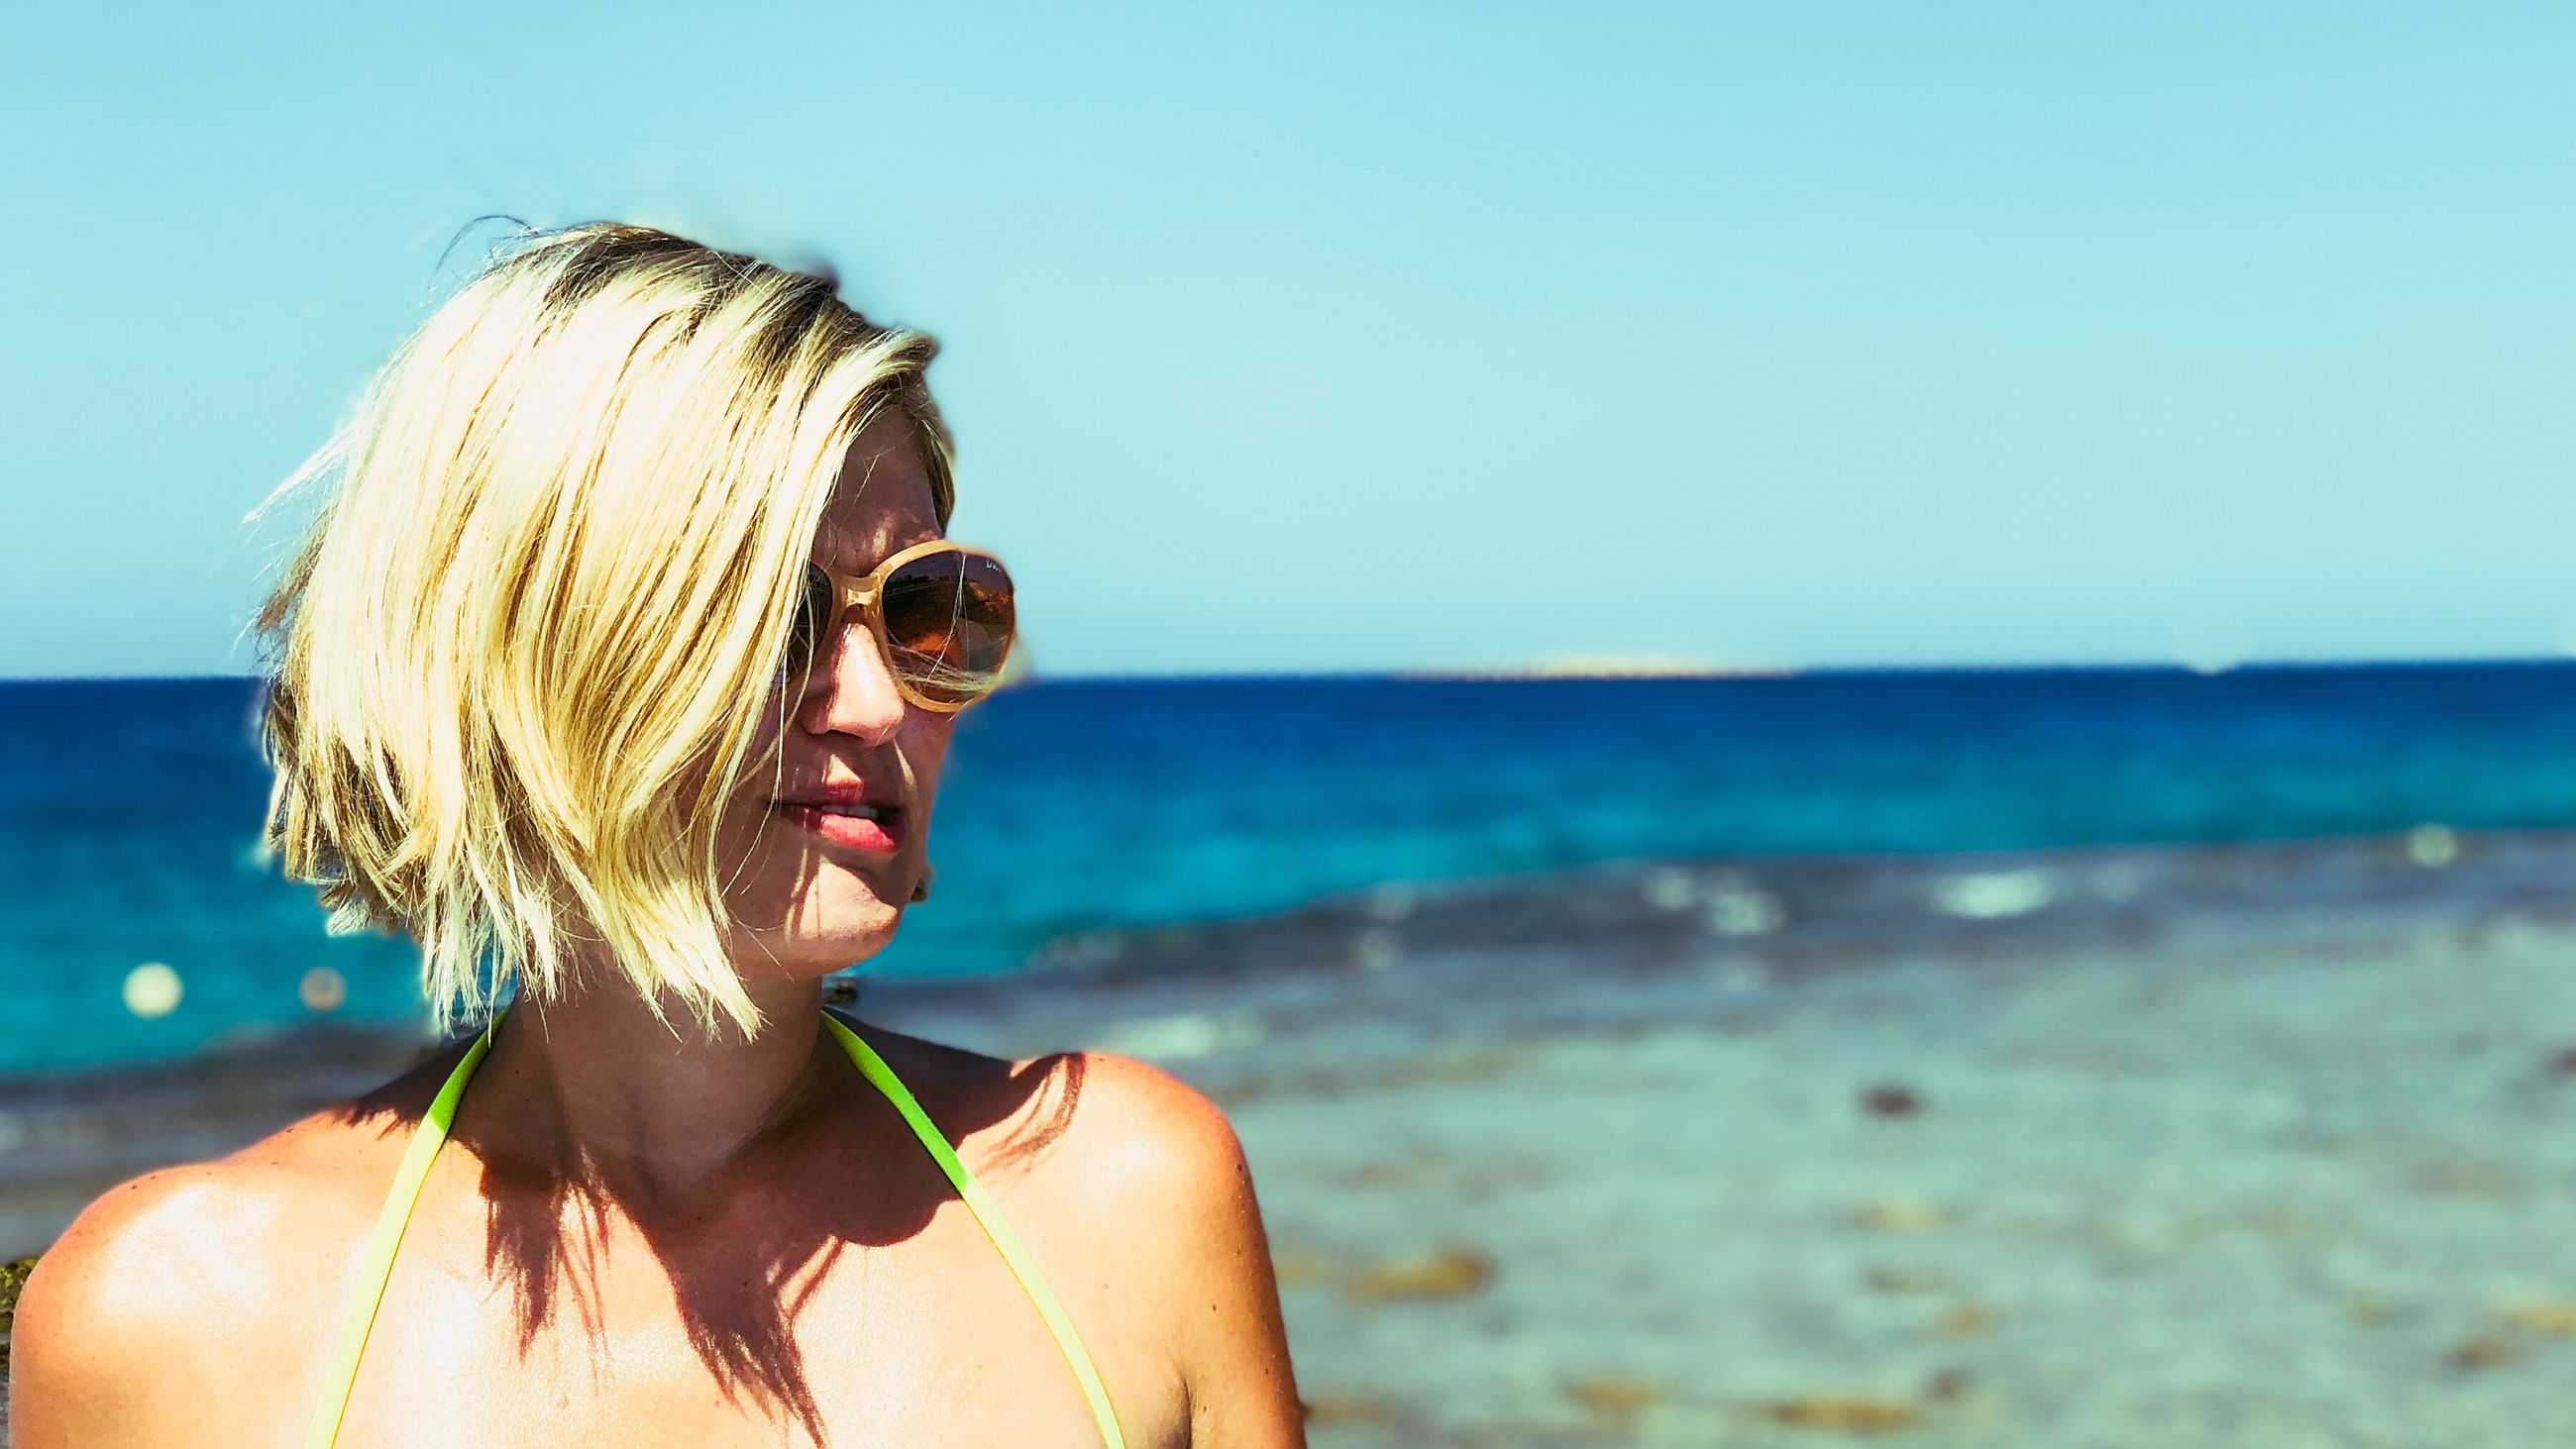 sea, headshot, water, blond hair, sky, beach, portrait, real people, one person, lifestyles, hair, nature, horizon over water, land, leisure activity, horizon, sunlight, young adult, hairstyle, outdoors